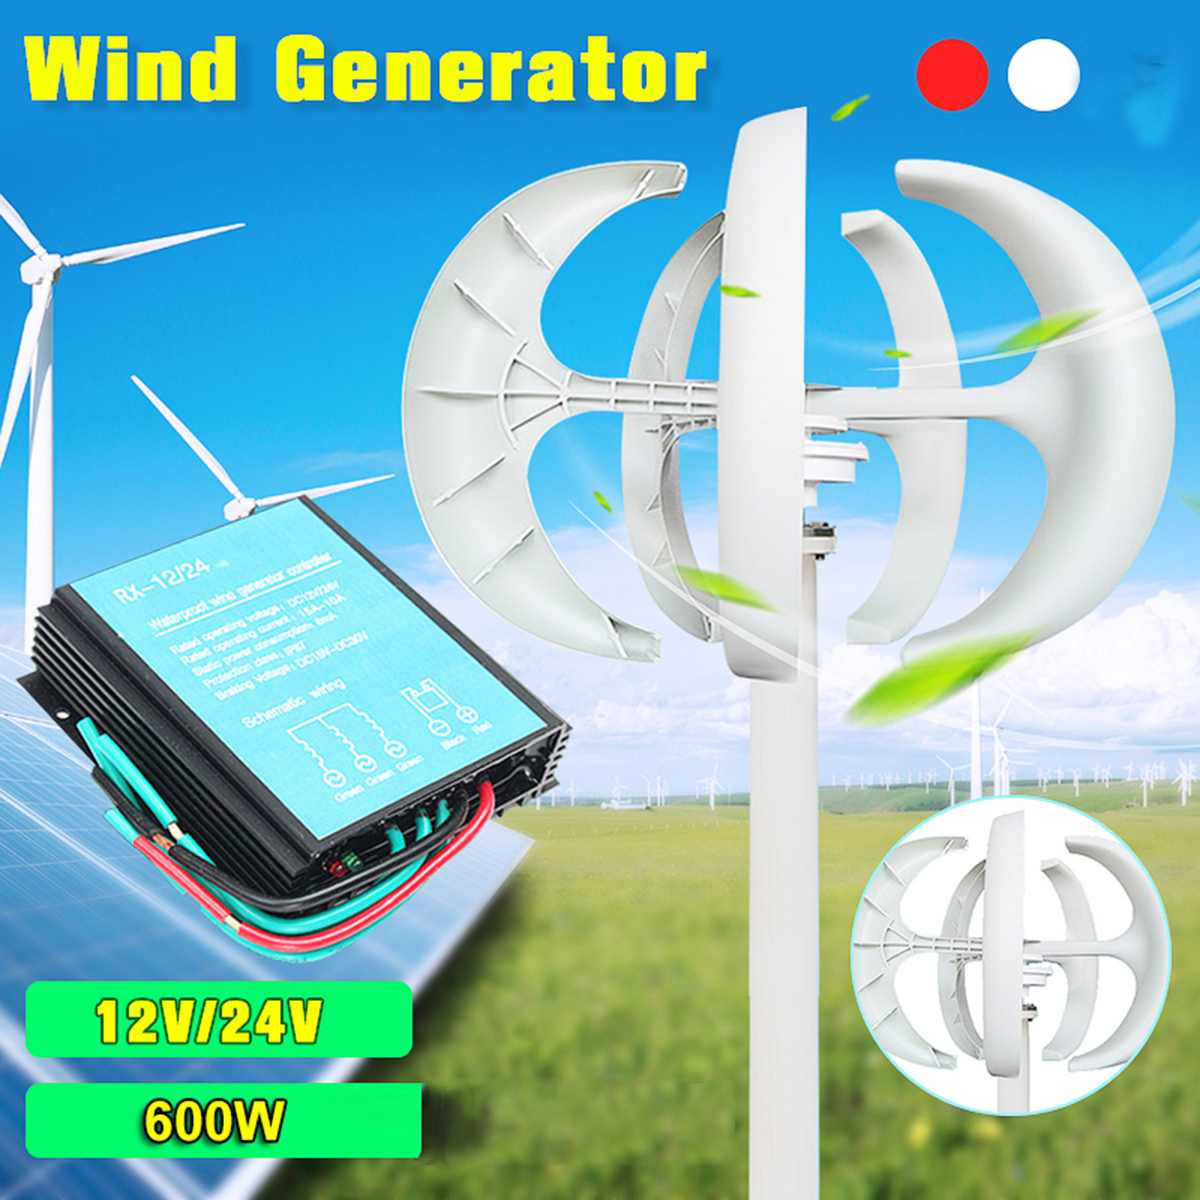 100w/200w/300w/600W  12 24V Vertical Axis Wind Turbine Generator VAWT Boat Garden with Controller Home Residential Use100w/200w/300w/600W  12 24V Vertical Axis Wind Turbine Generator VAWT Boat Garden with Controller Home Residential Use